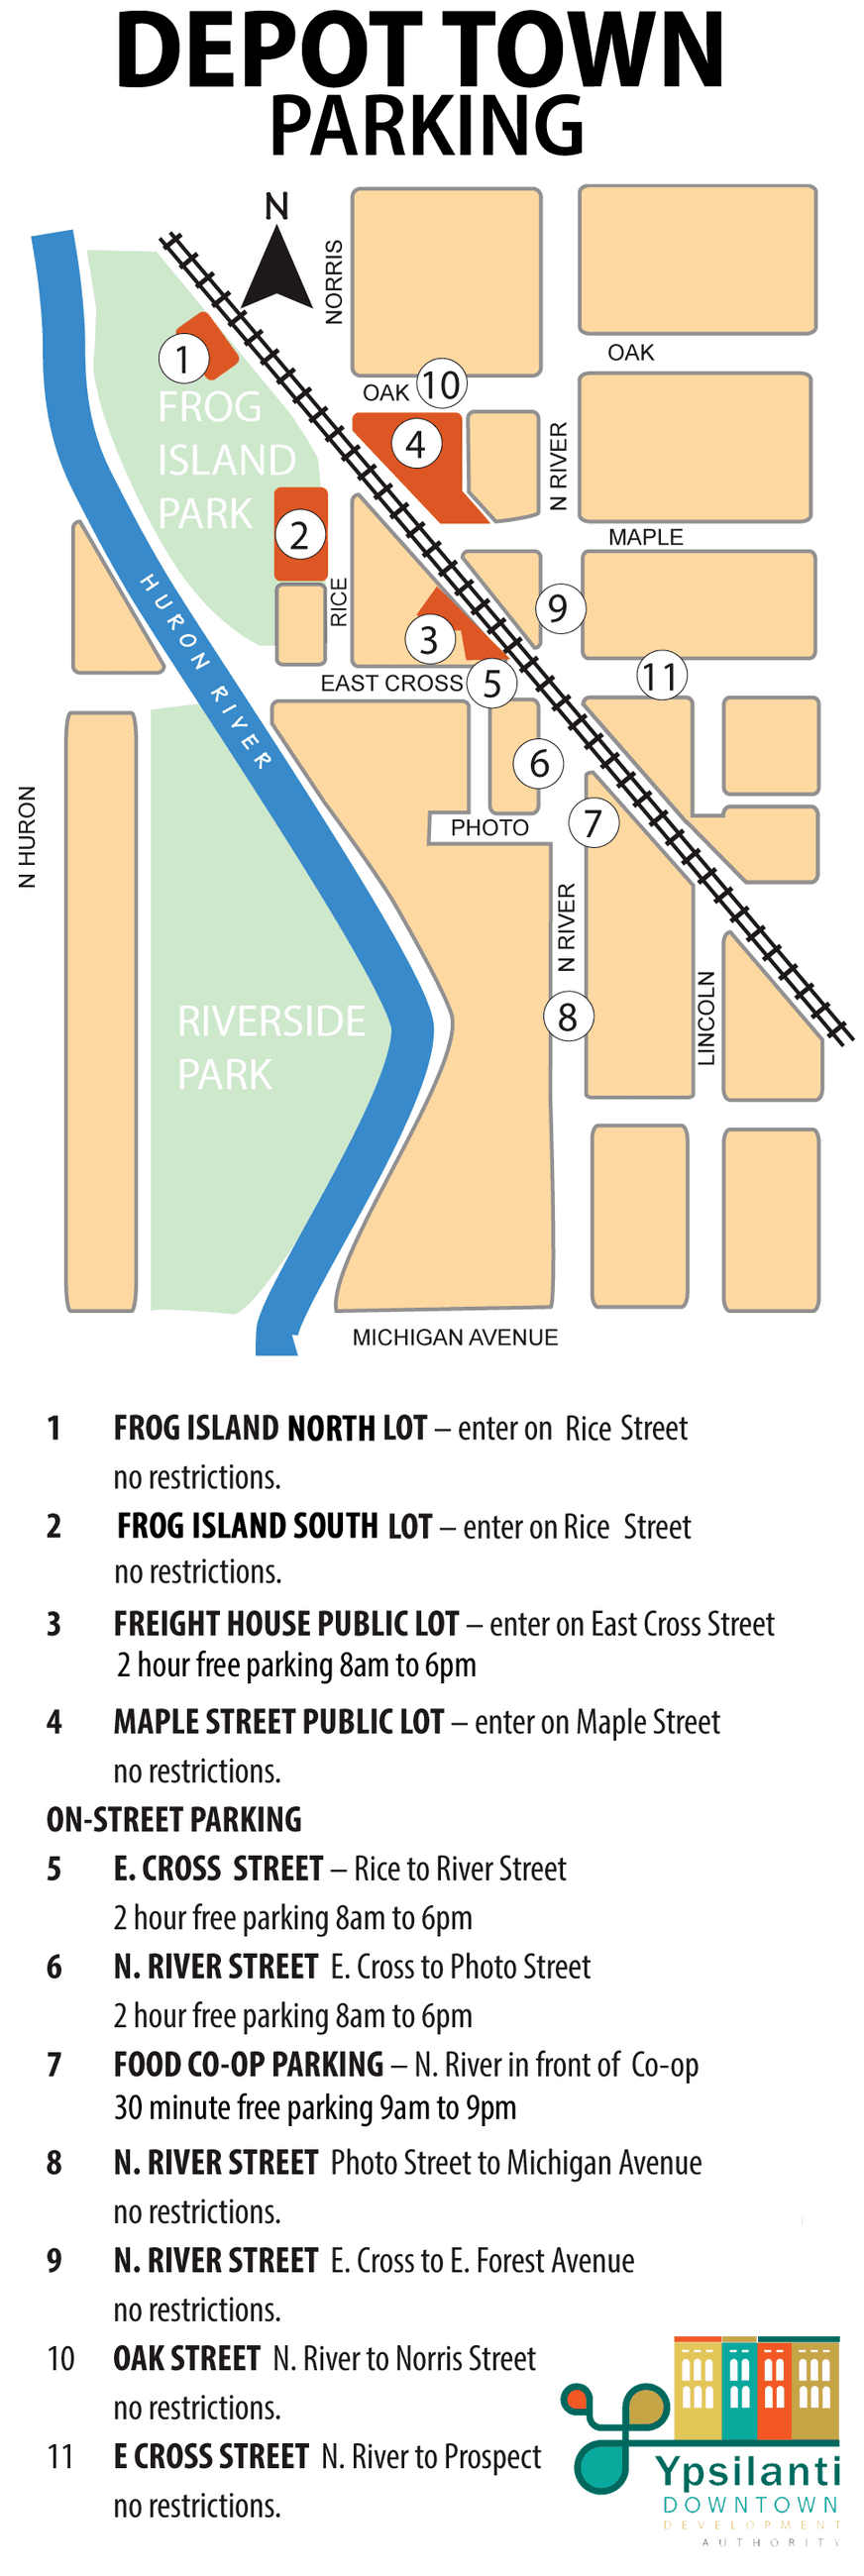 Map of on-street and off-street parking in the Depot Town commercial district